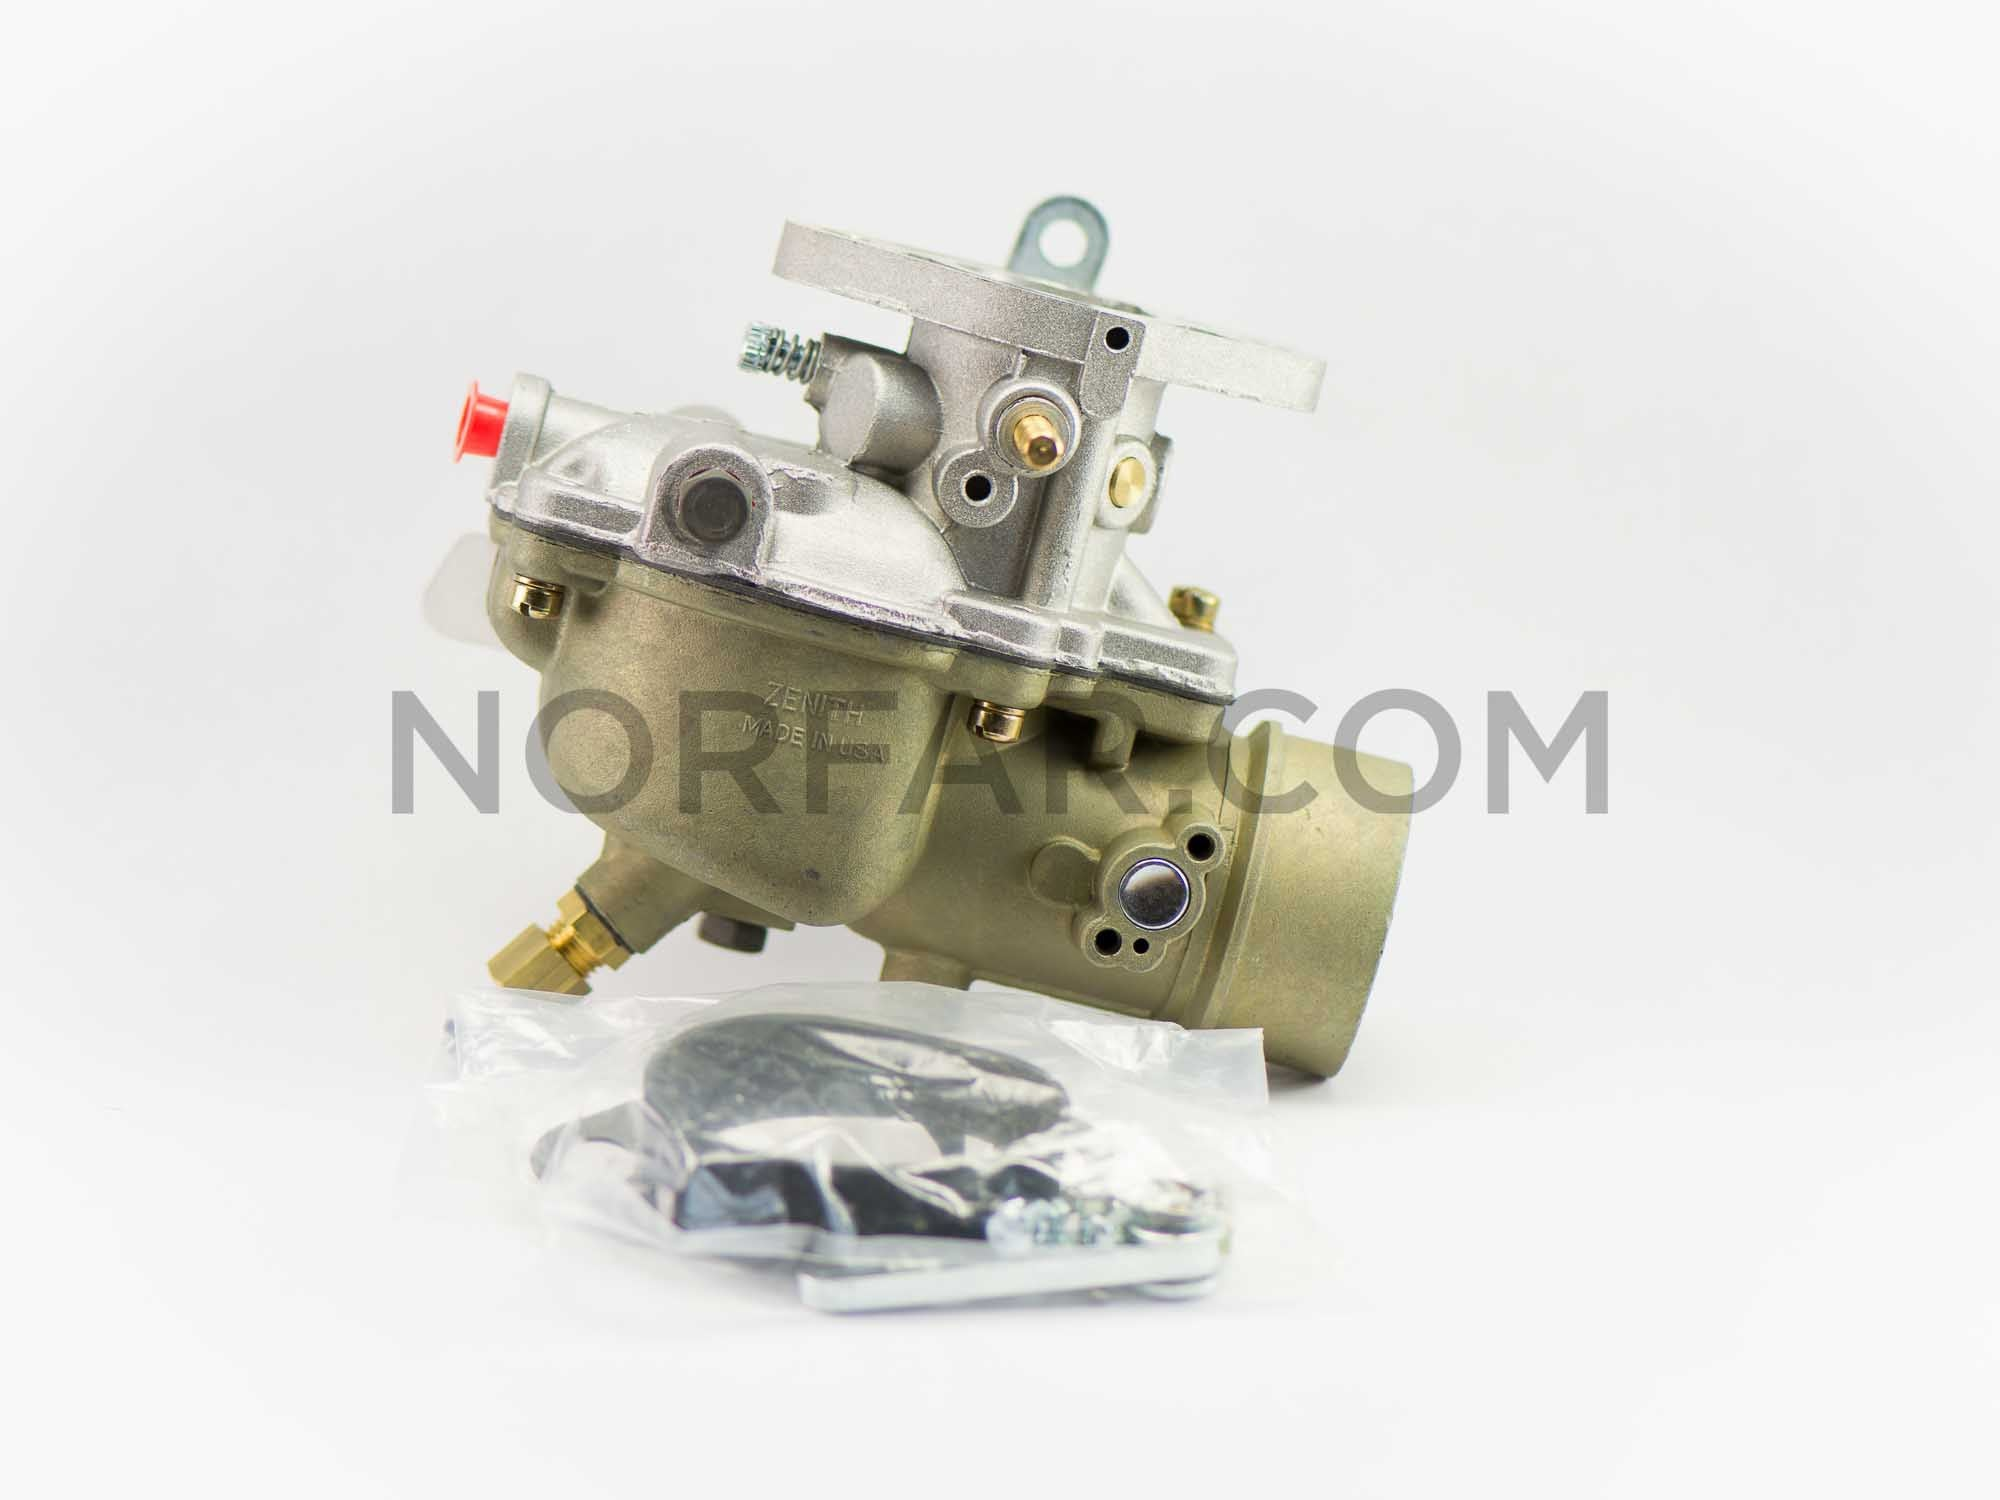 Zenith Page 2 Carburetor Parts Diagram On Exploded 13048 13108 13118 13152 13165 13179 13226